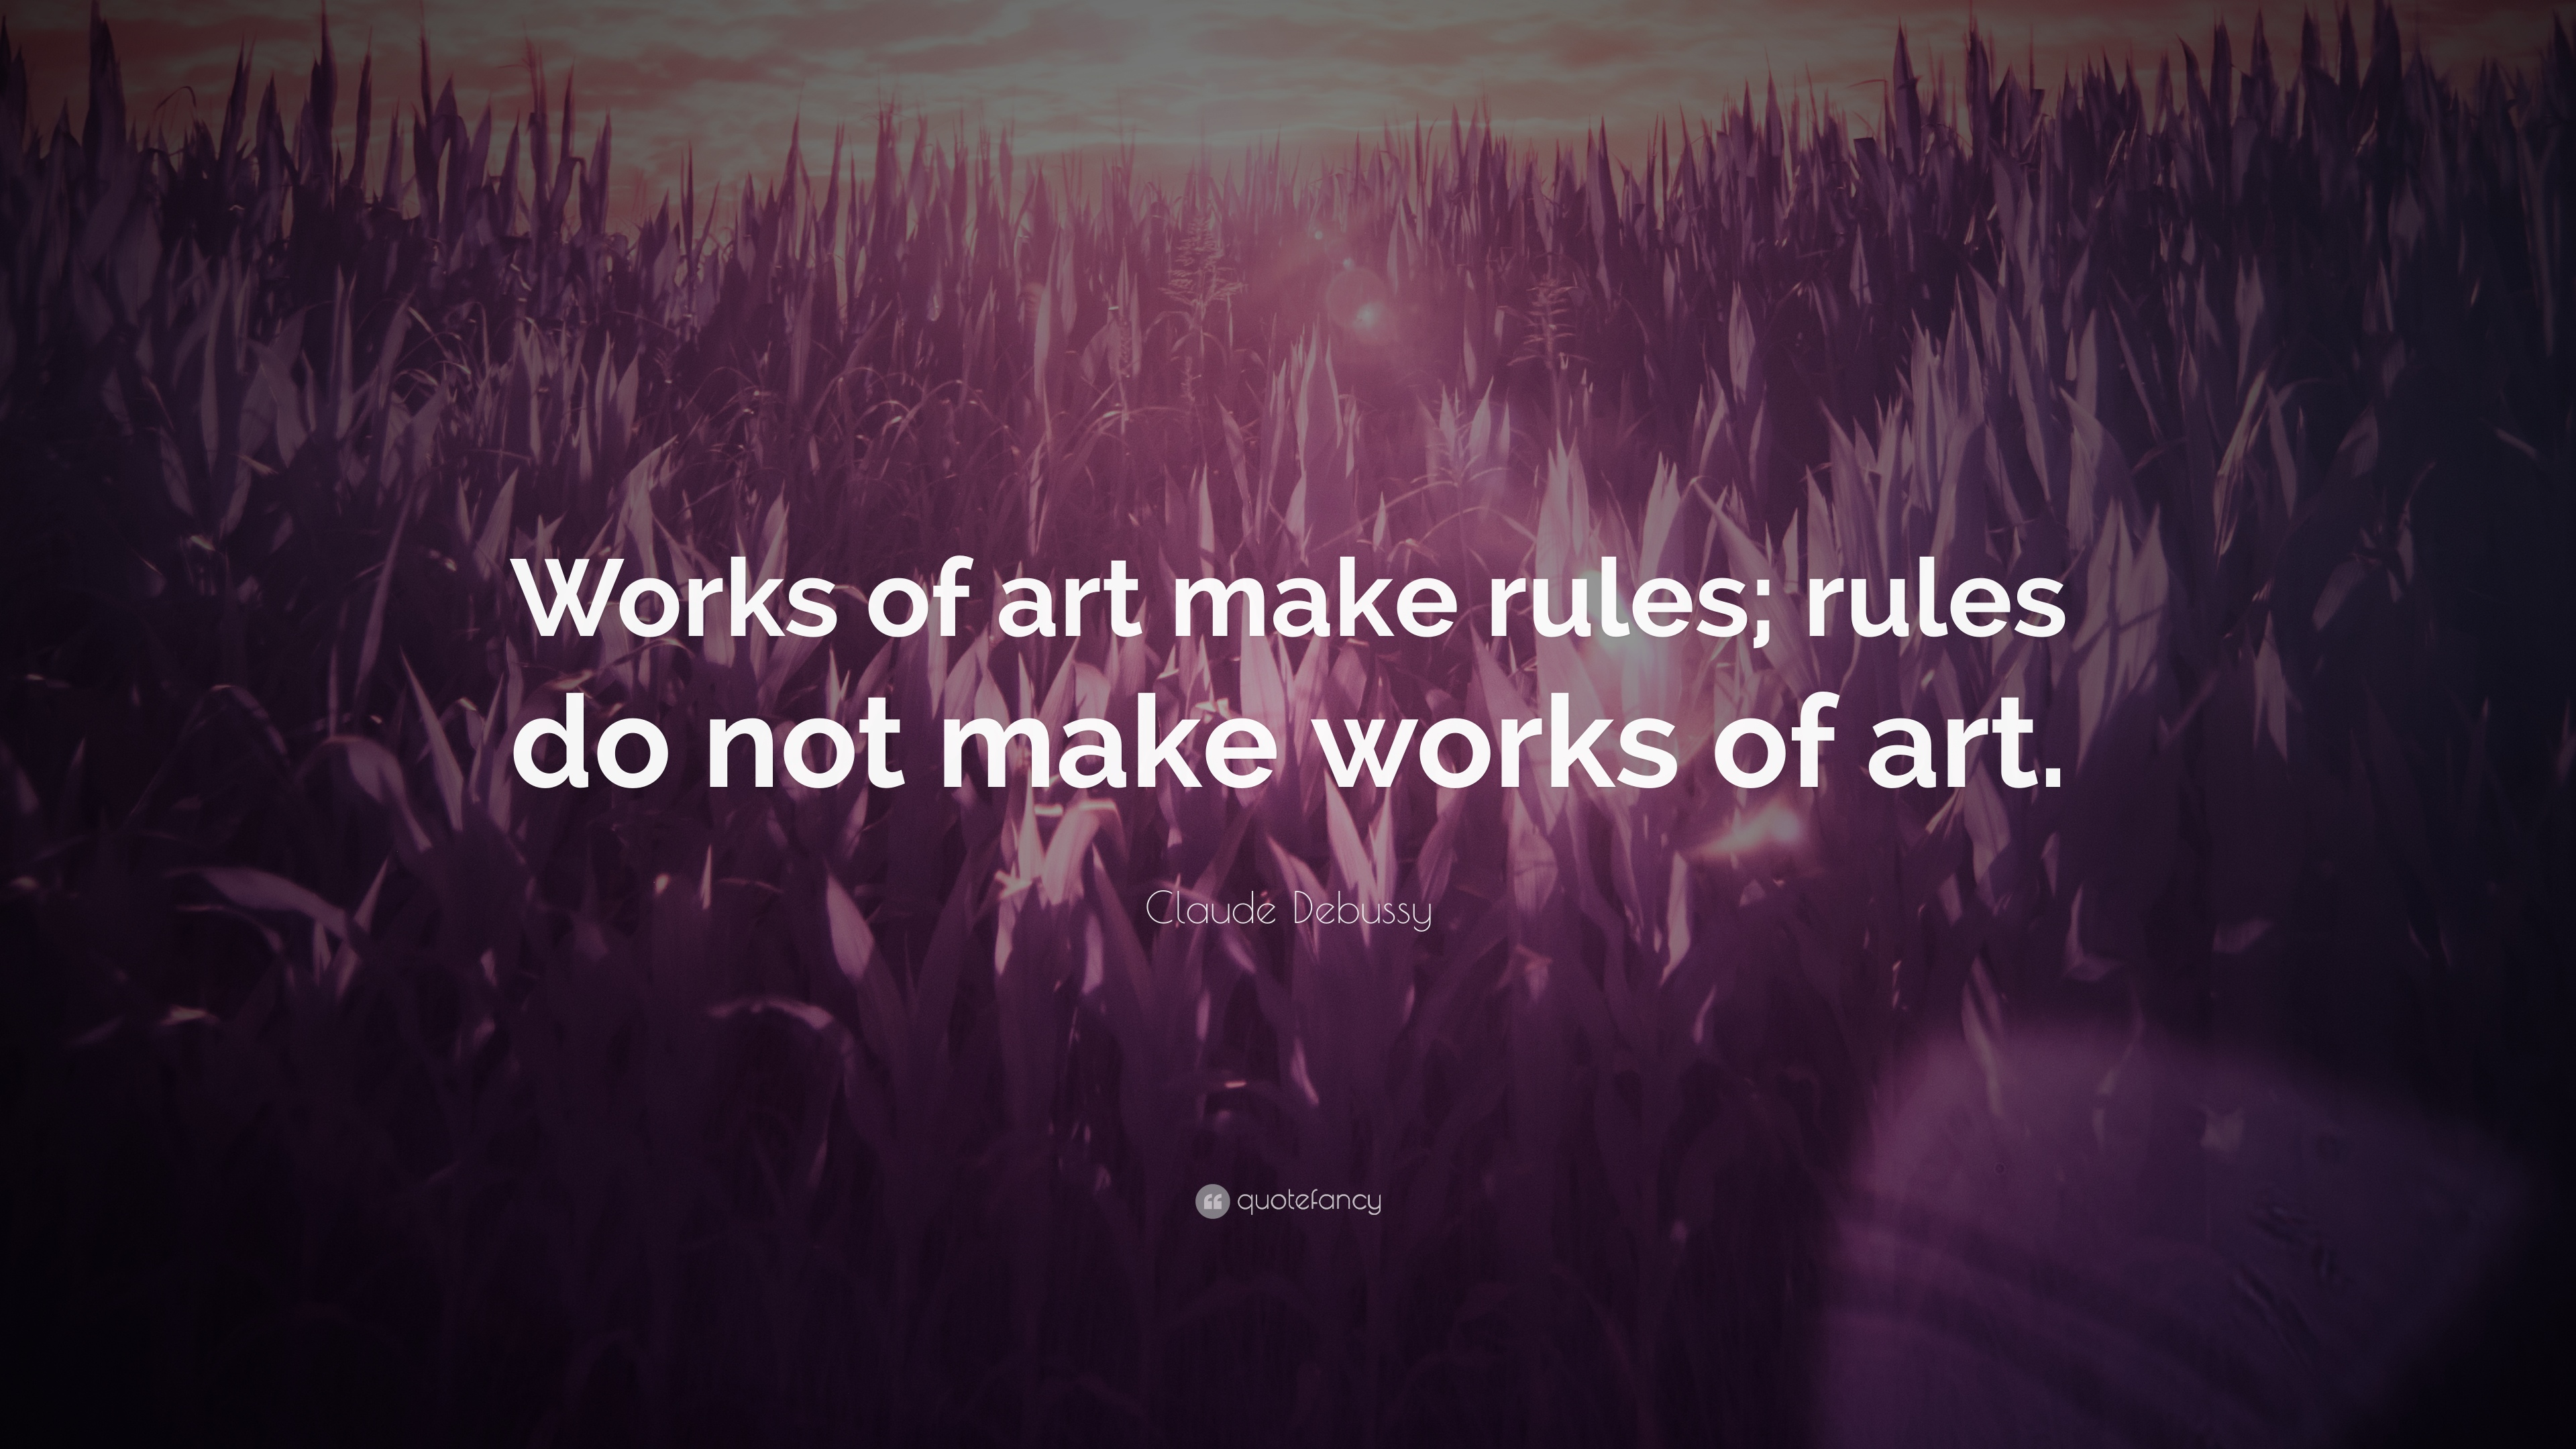 Are there rules in art?